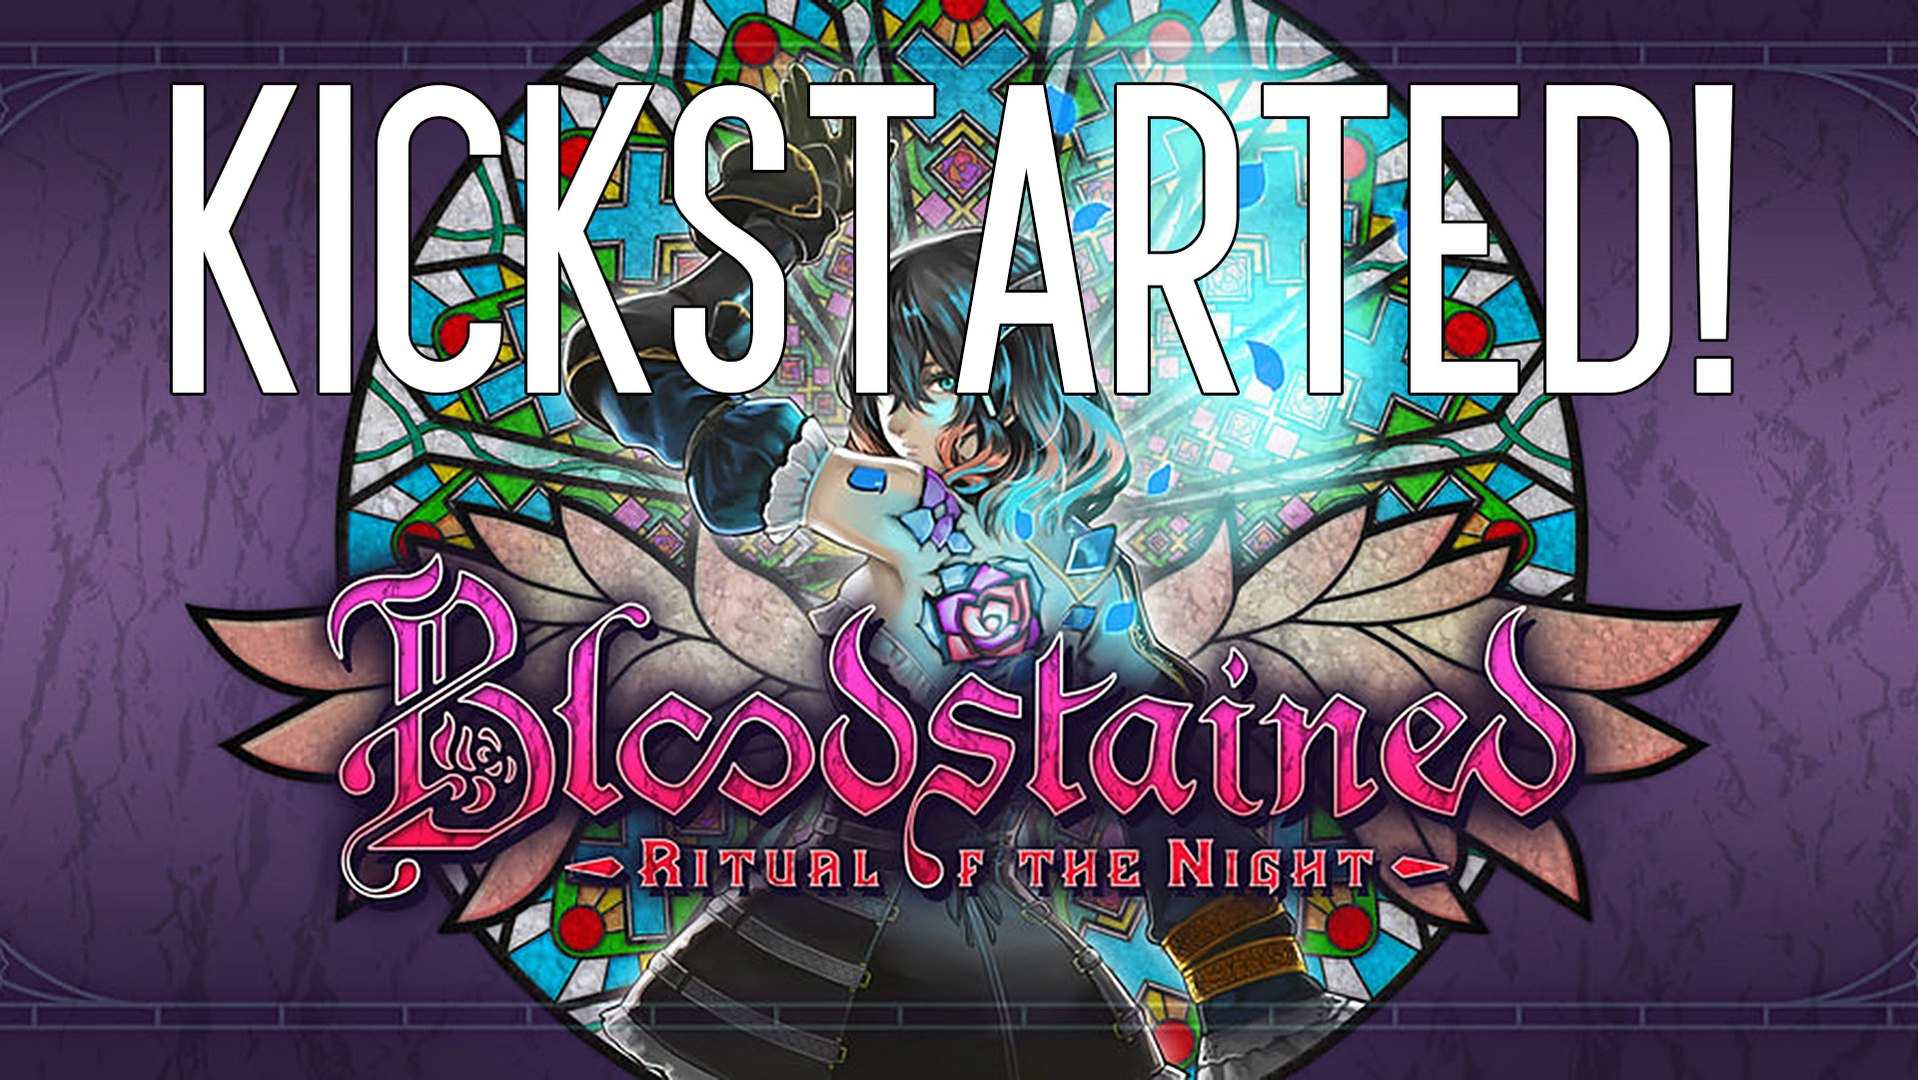 Kickstarted! Bloodstained: Ritual of the Night